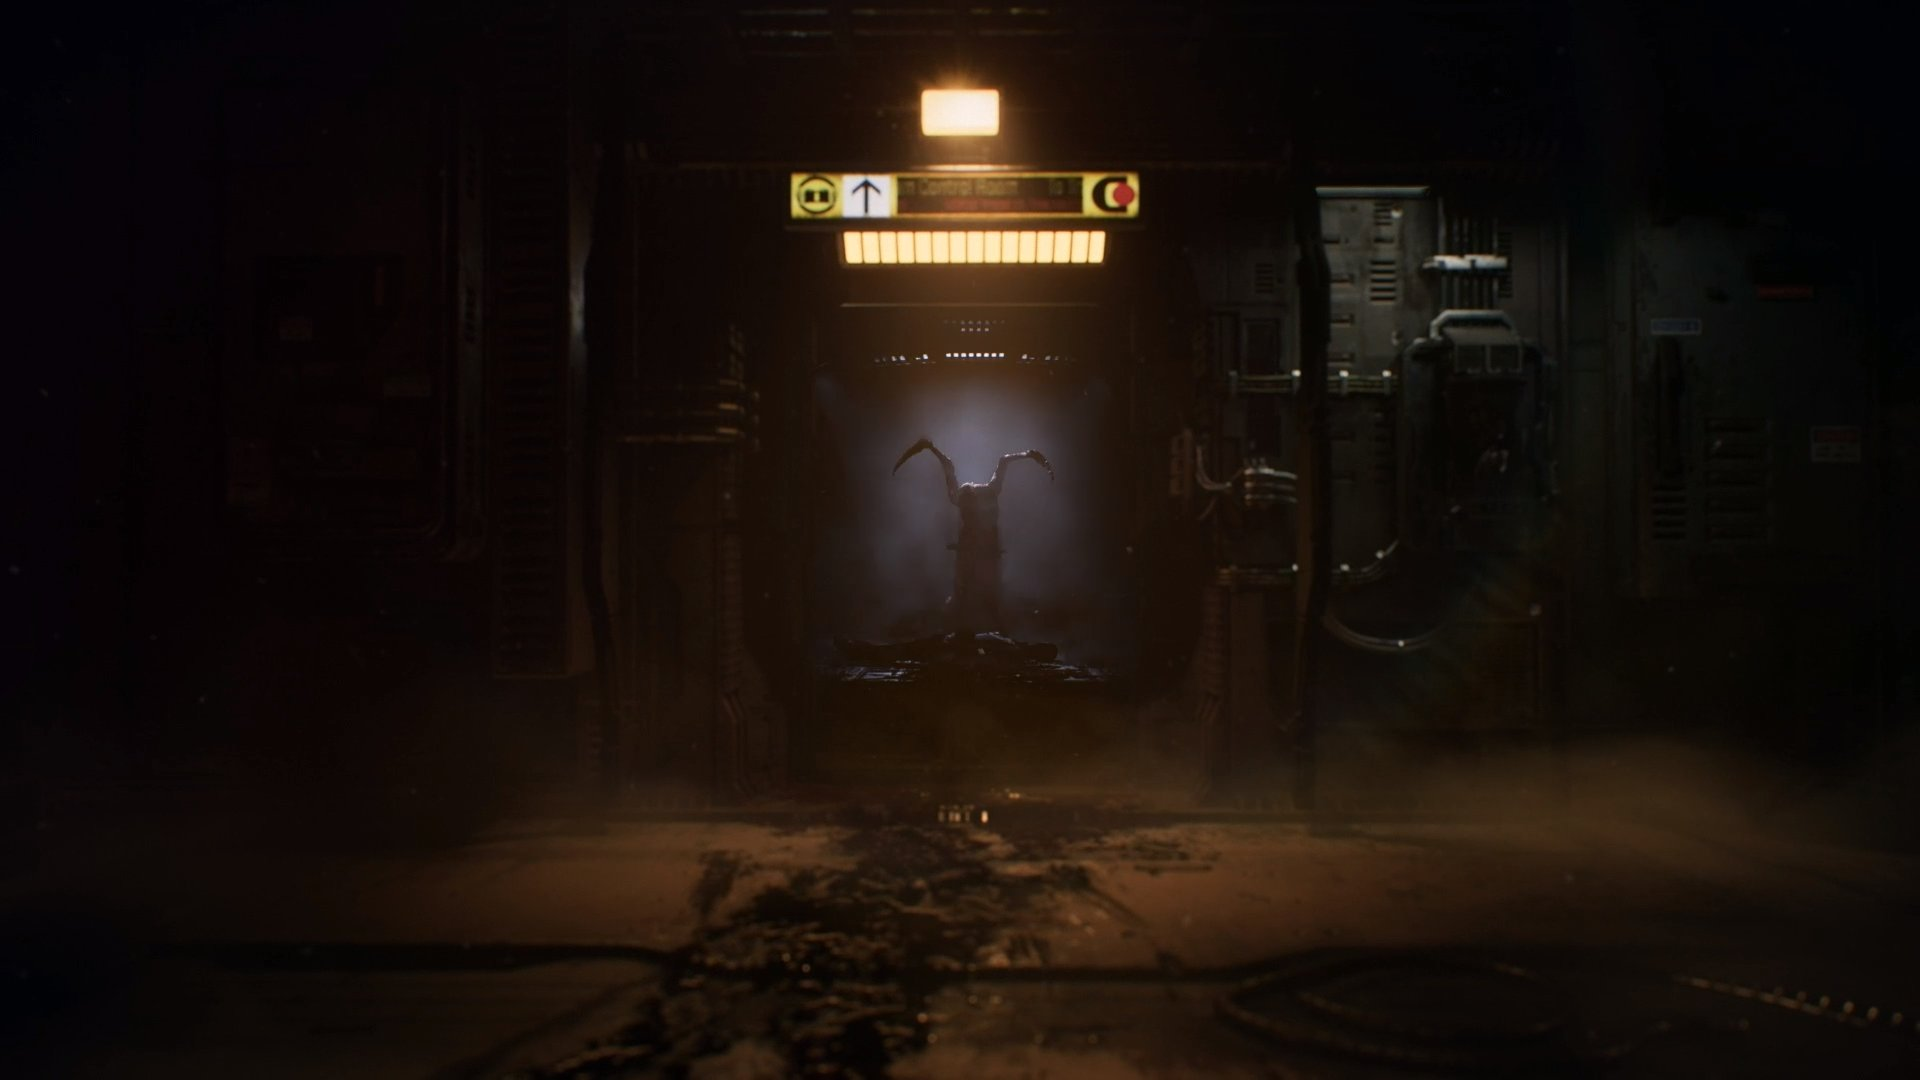 Dead Space remake trailer imagery